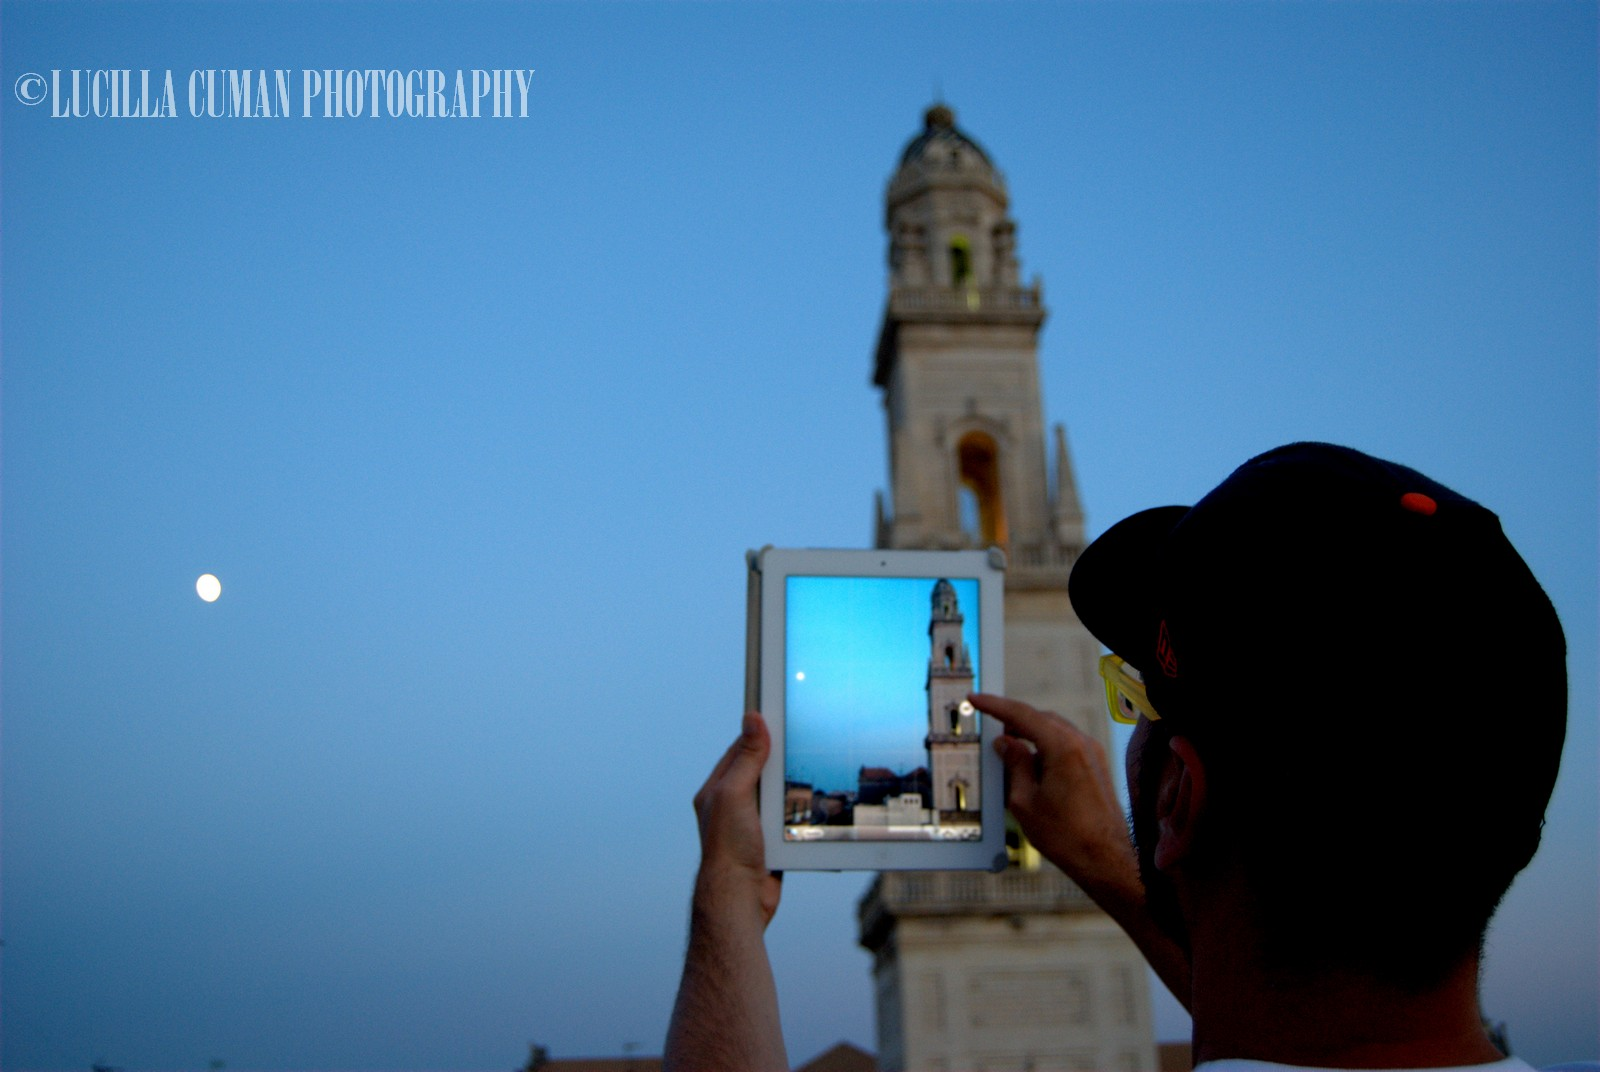 LECCE CON IL NASO ALL'INSU PHOTO TOUR_LUCILLA CUMAN PH (4)